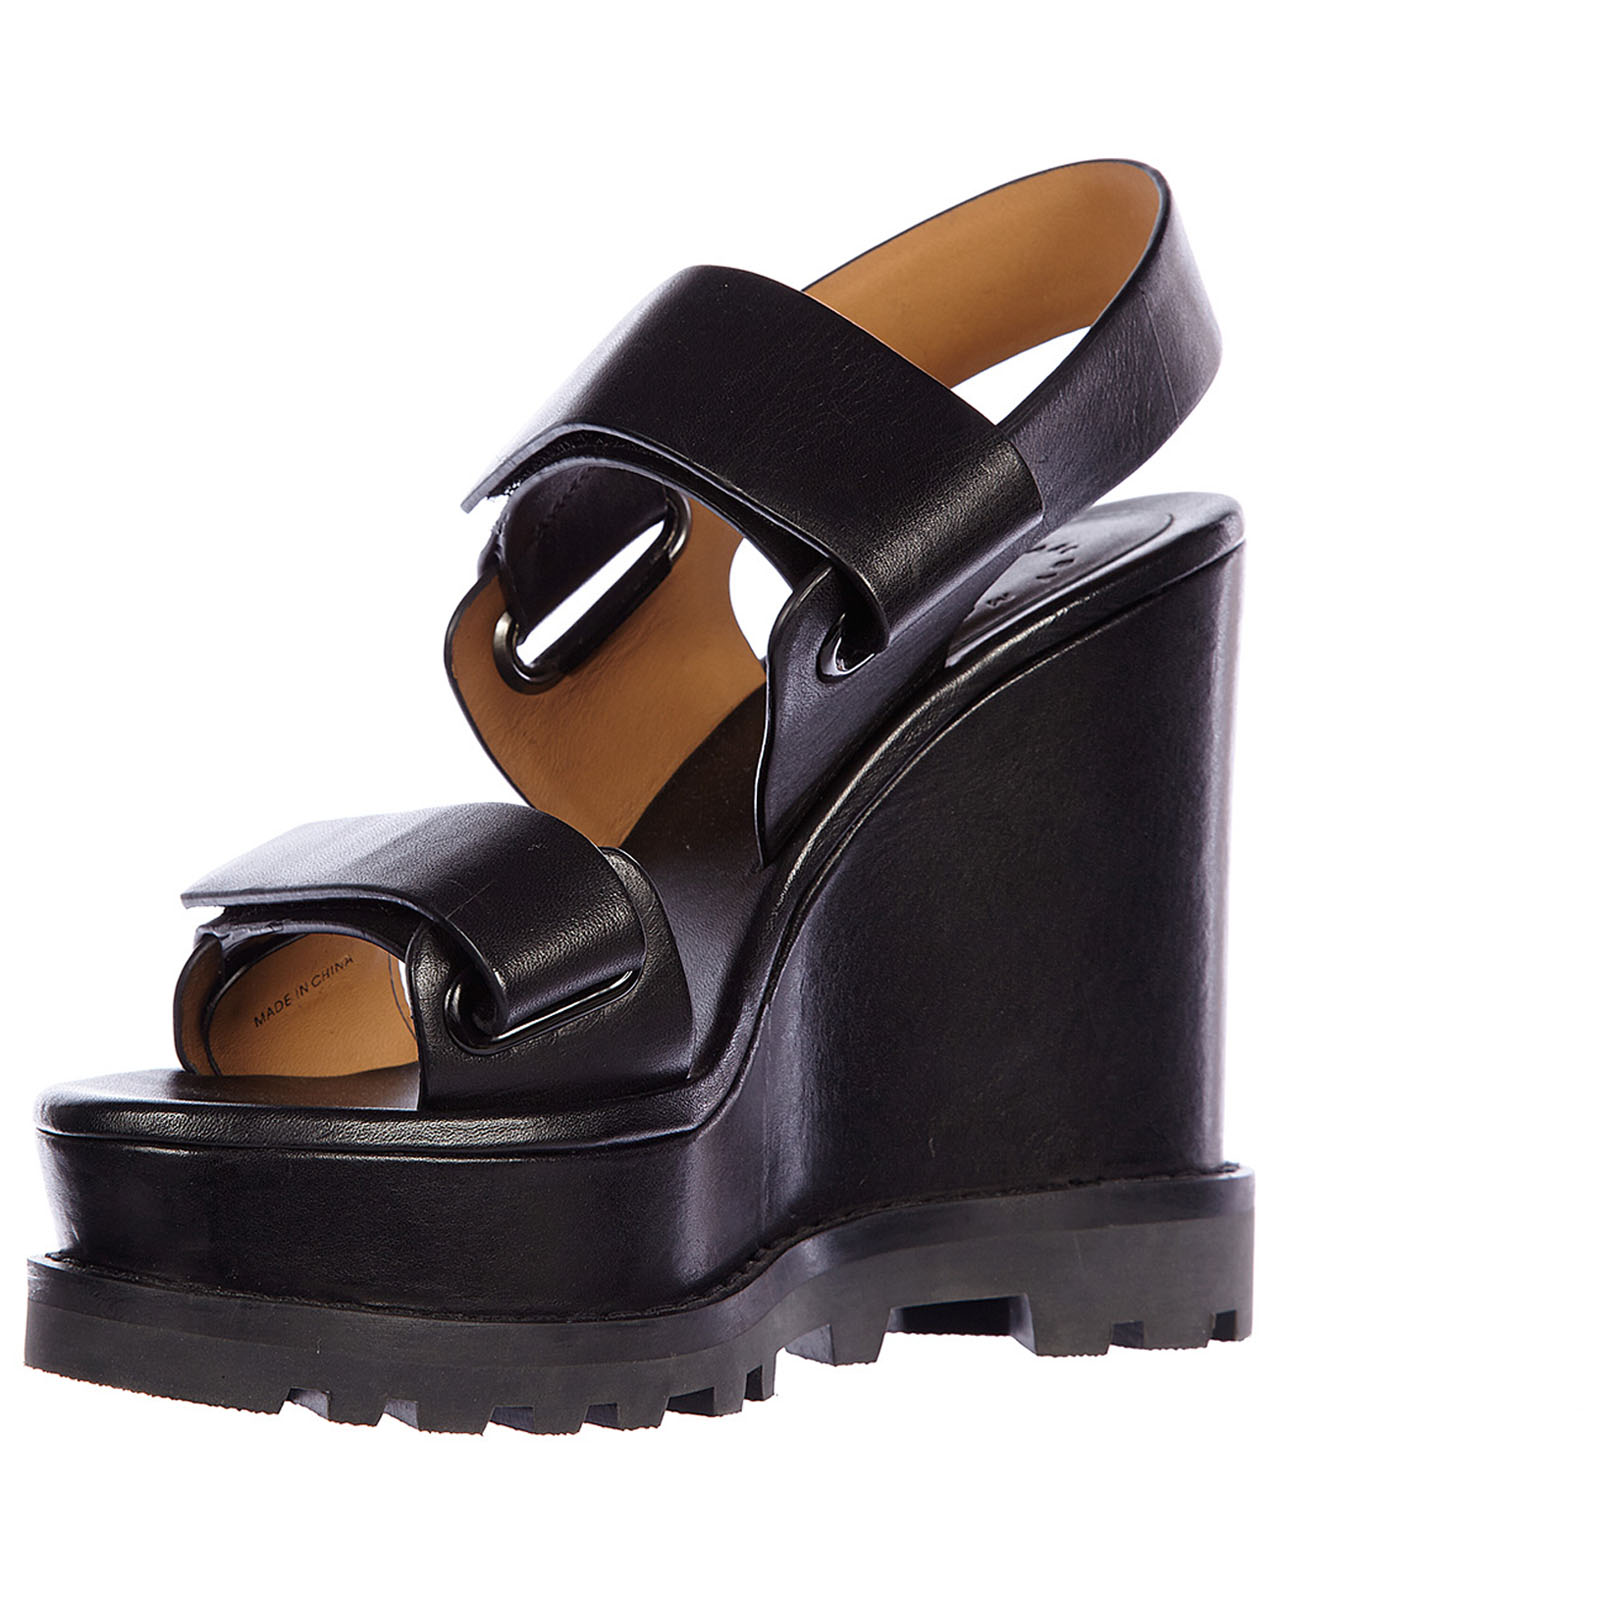 Women's leather shoes wedges sandals